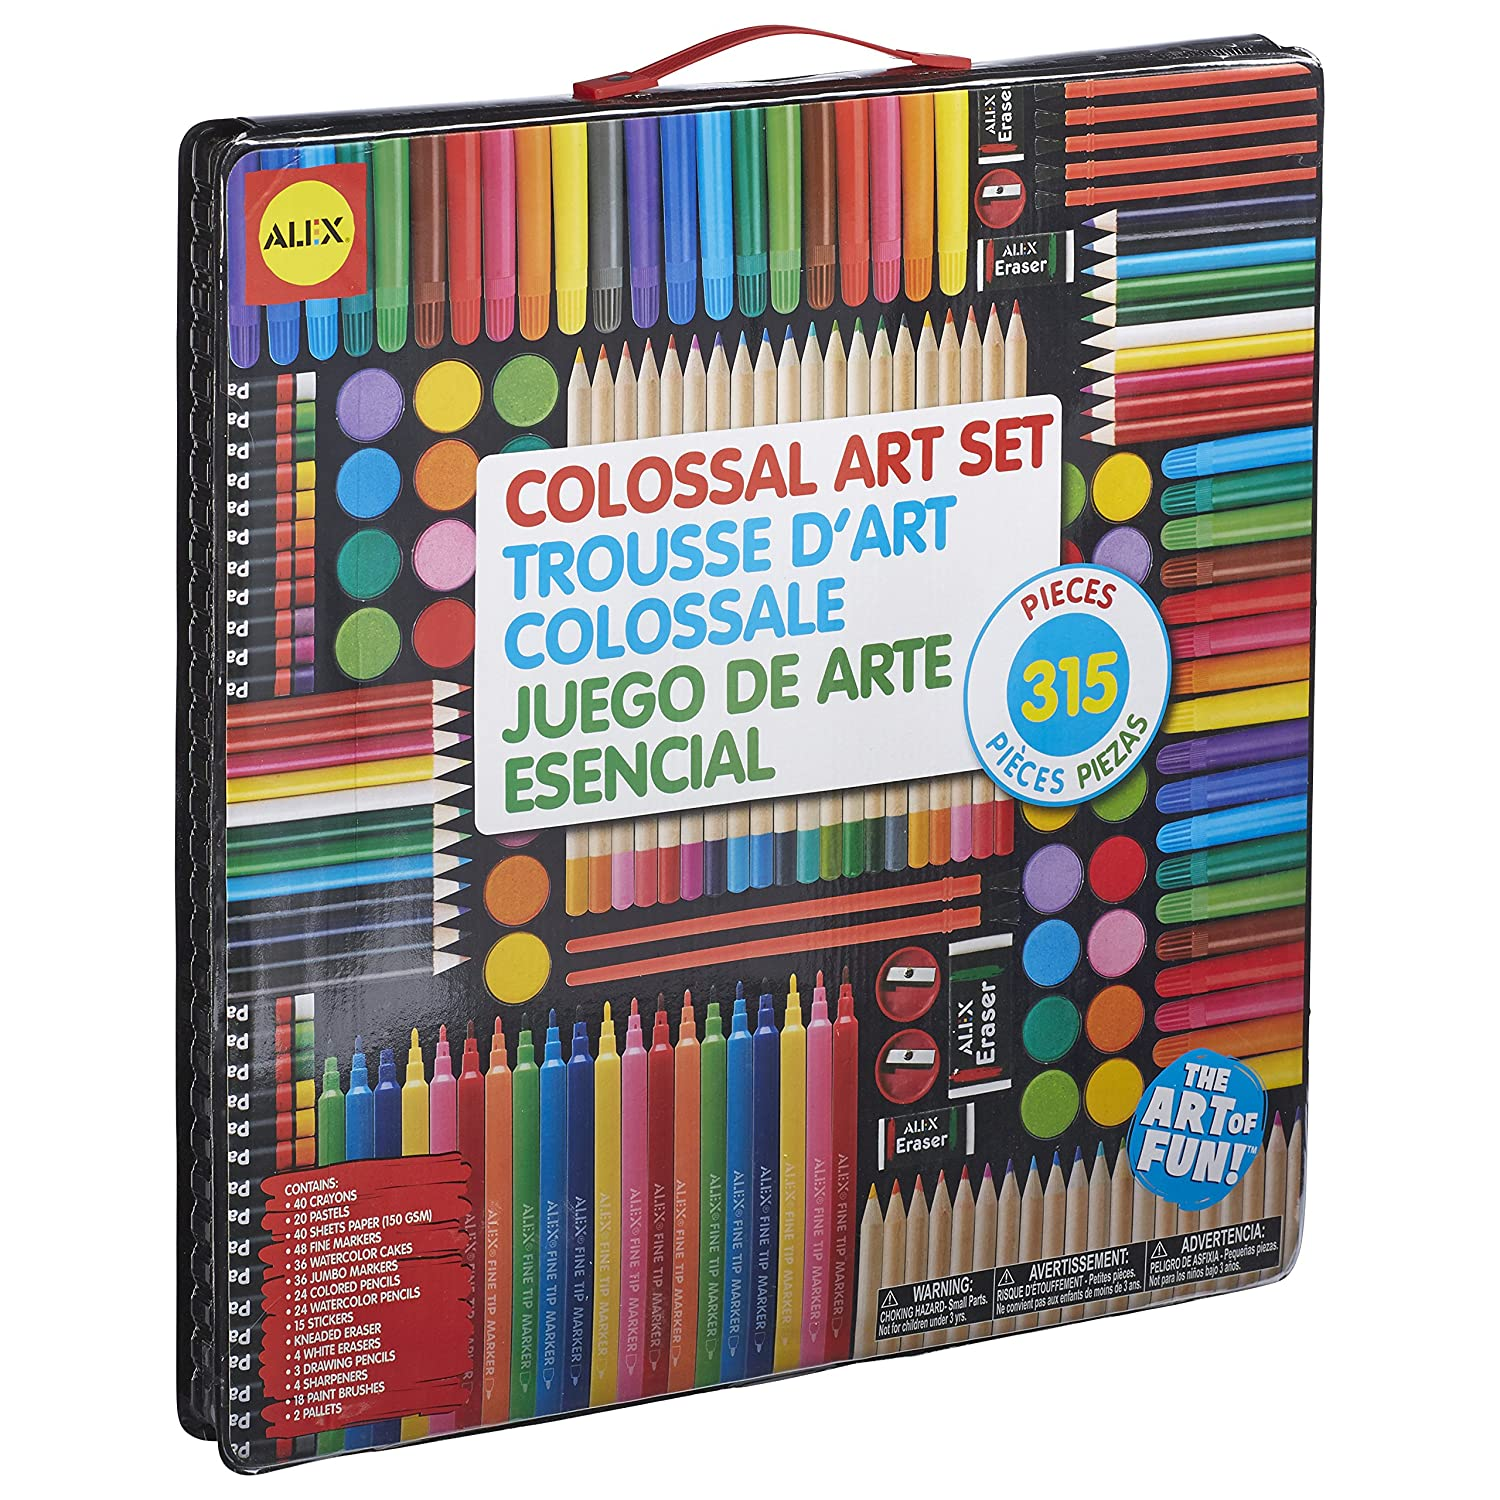 colossal art set 315 pc kids artist deluxe kit drawing coloring supplies toy new ebay. Black Bedroom Furniture Sets. Home Design Ideas